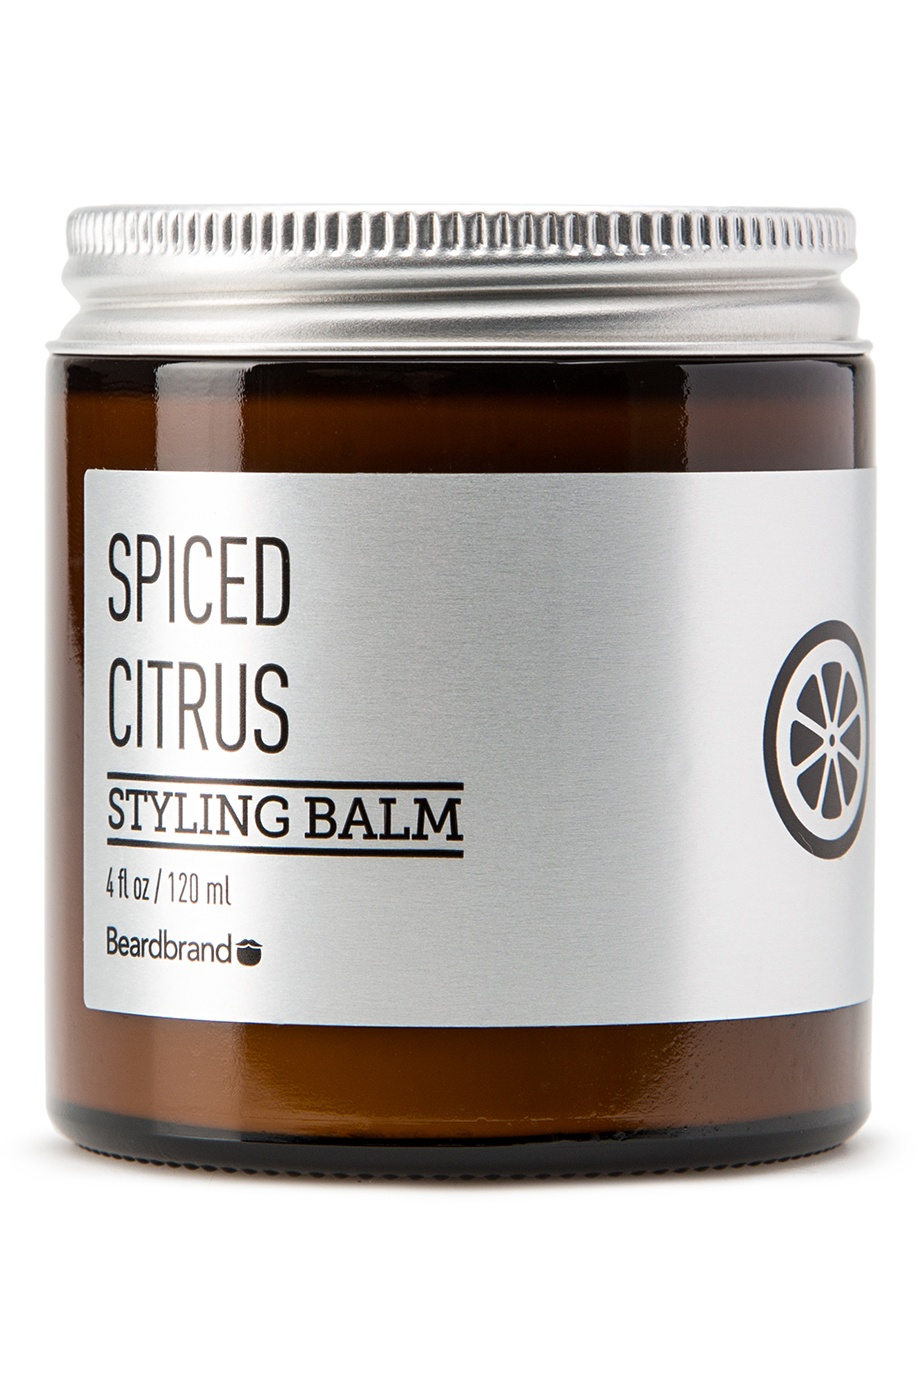 Бальзам для укладки «Spiced Citrus», 120 ml Beardbrand (фото)